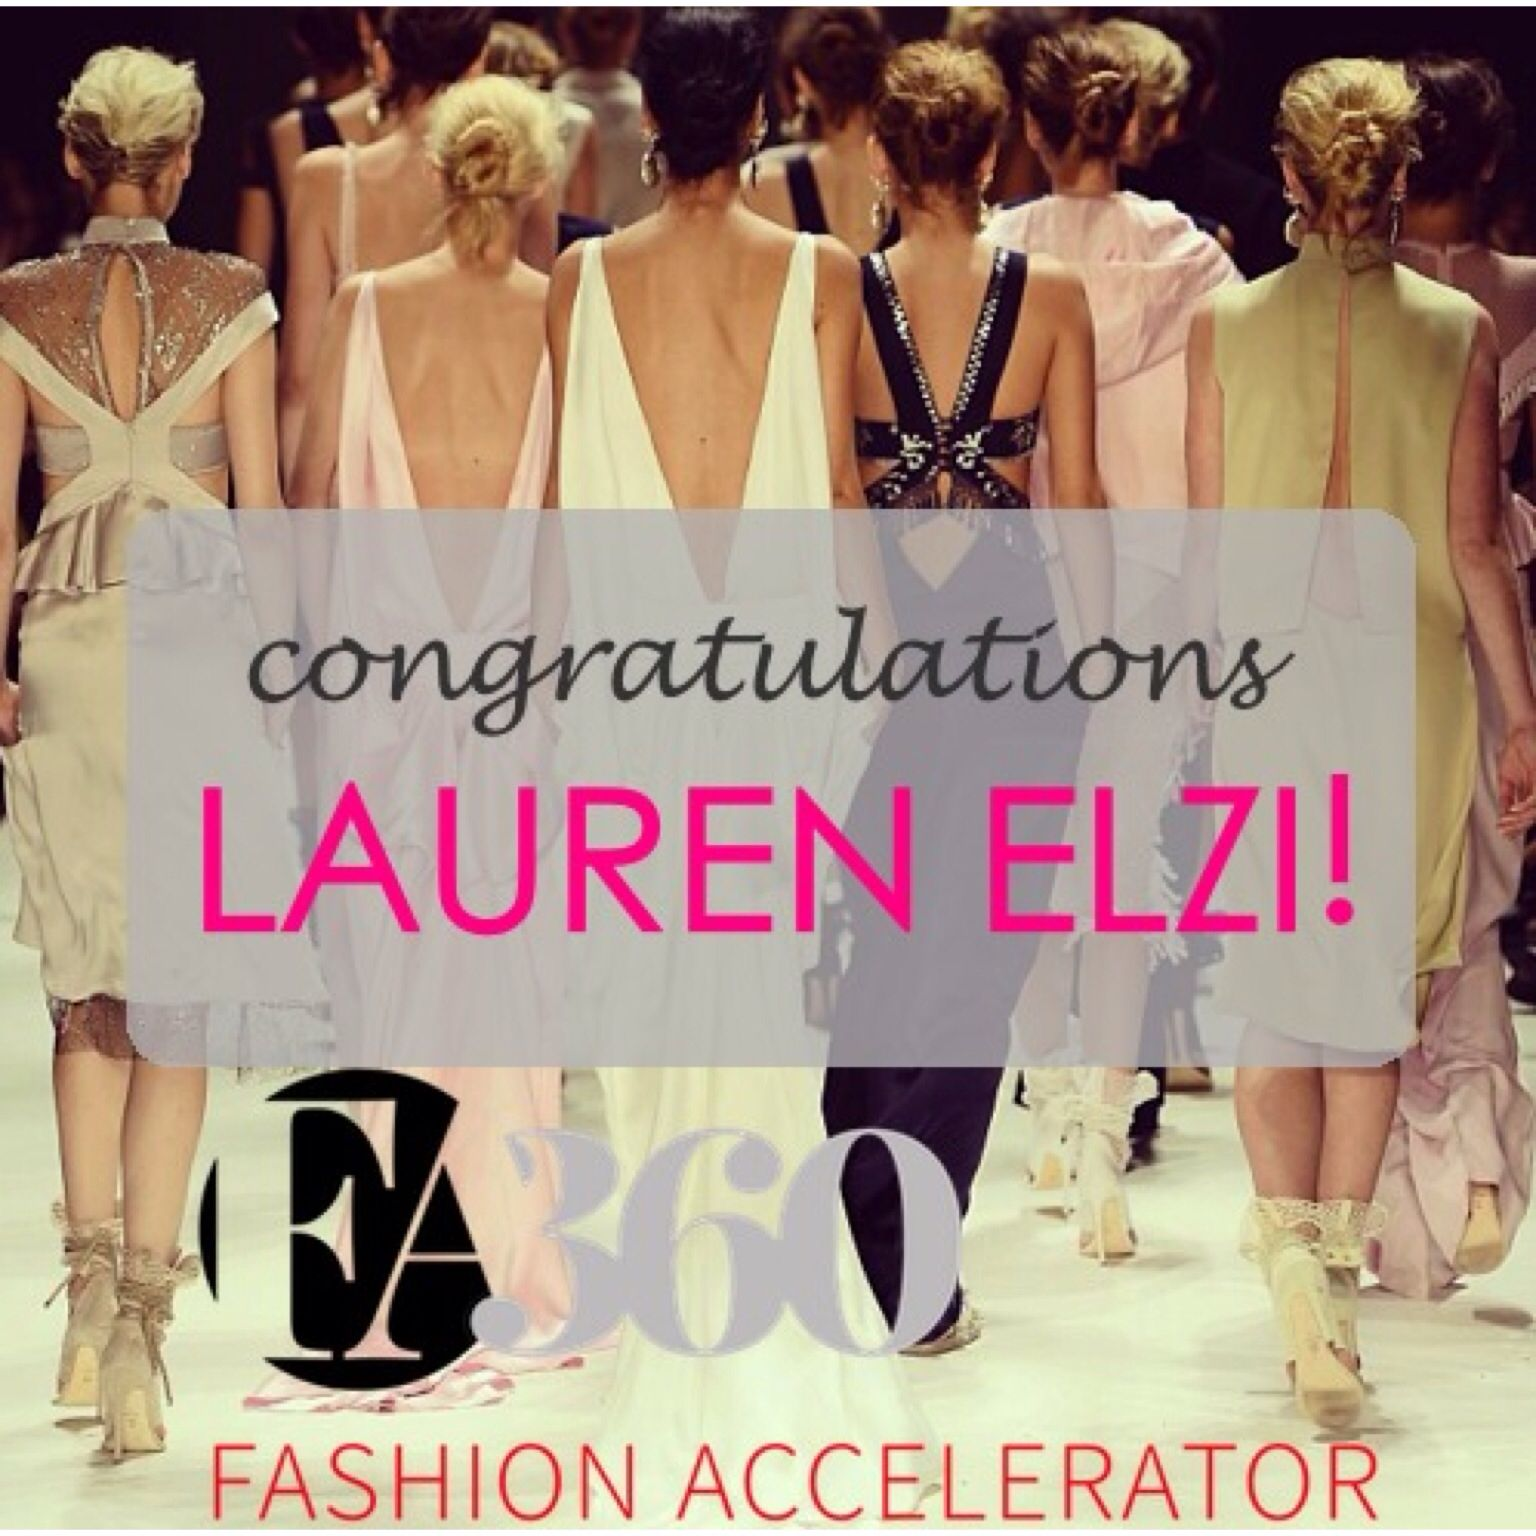 The winner of a Free @fashion Business Accelerator 360 Course is.... LAUREN ELZI!!! <3 <3 Please Facebook Message us for details. Thank you to everyone who participated! XoX